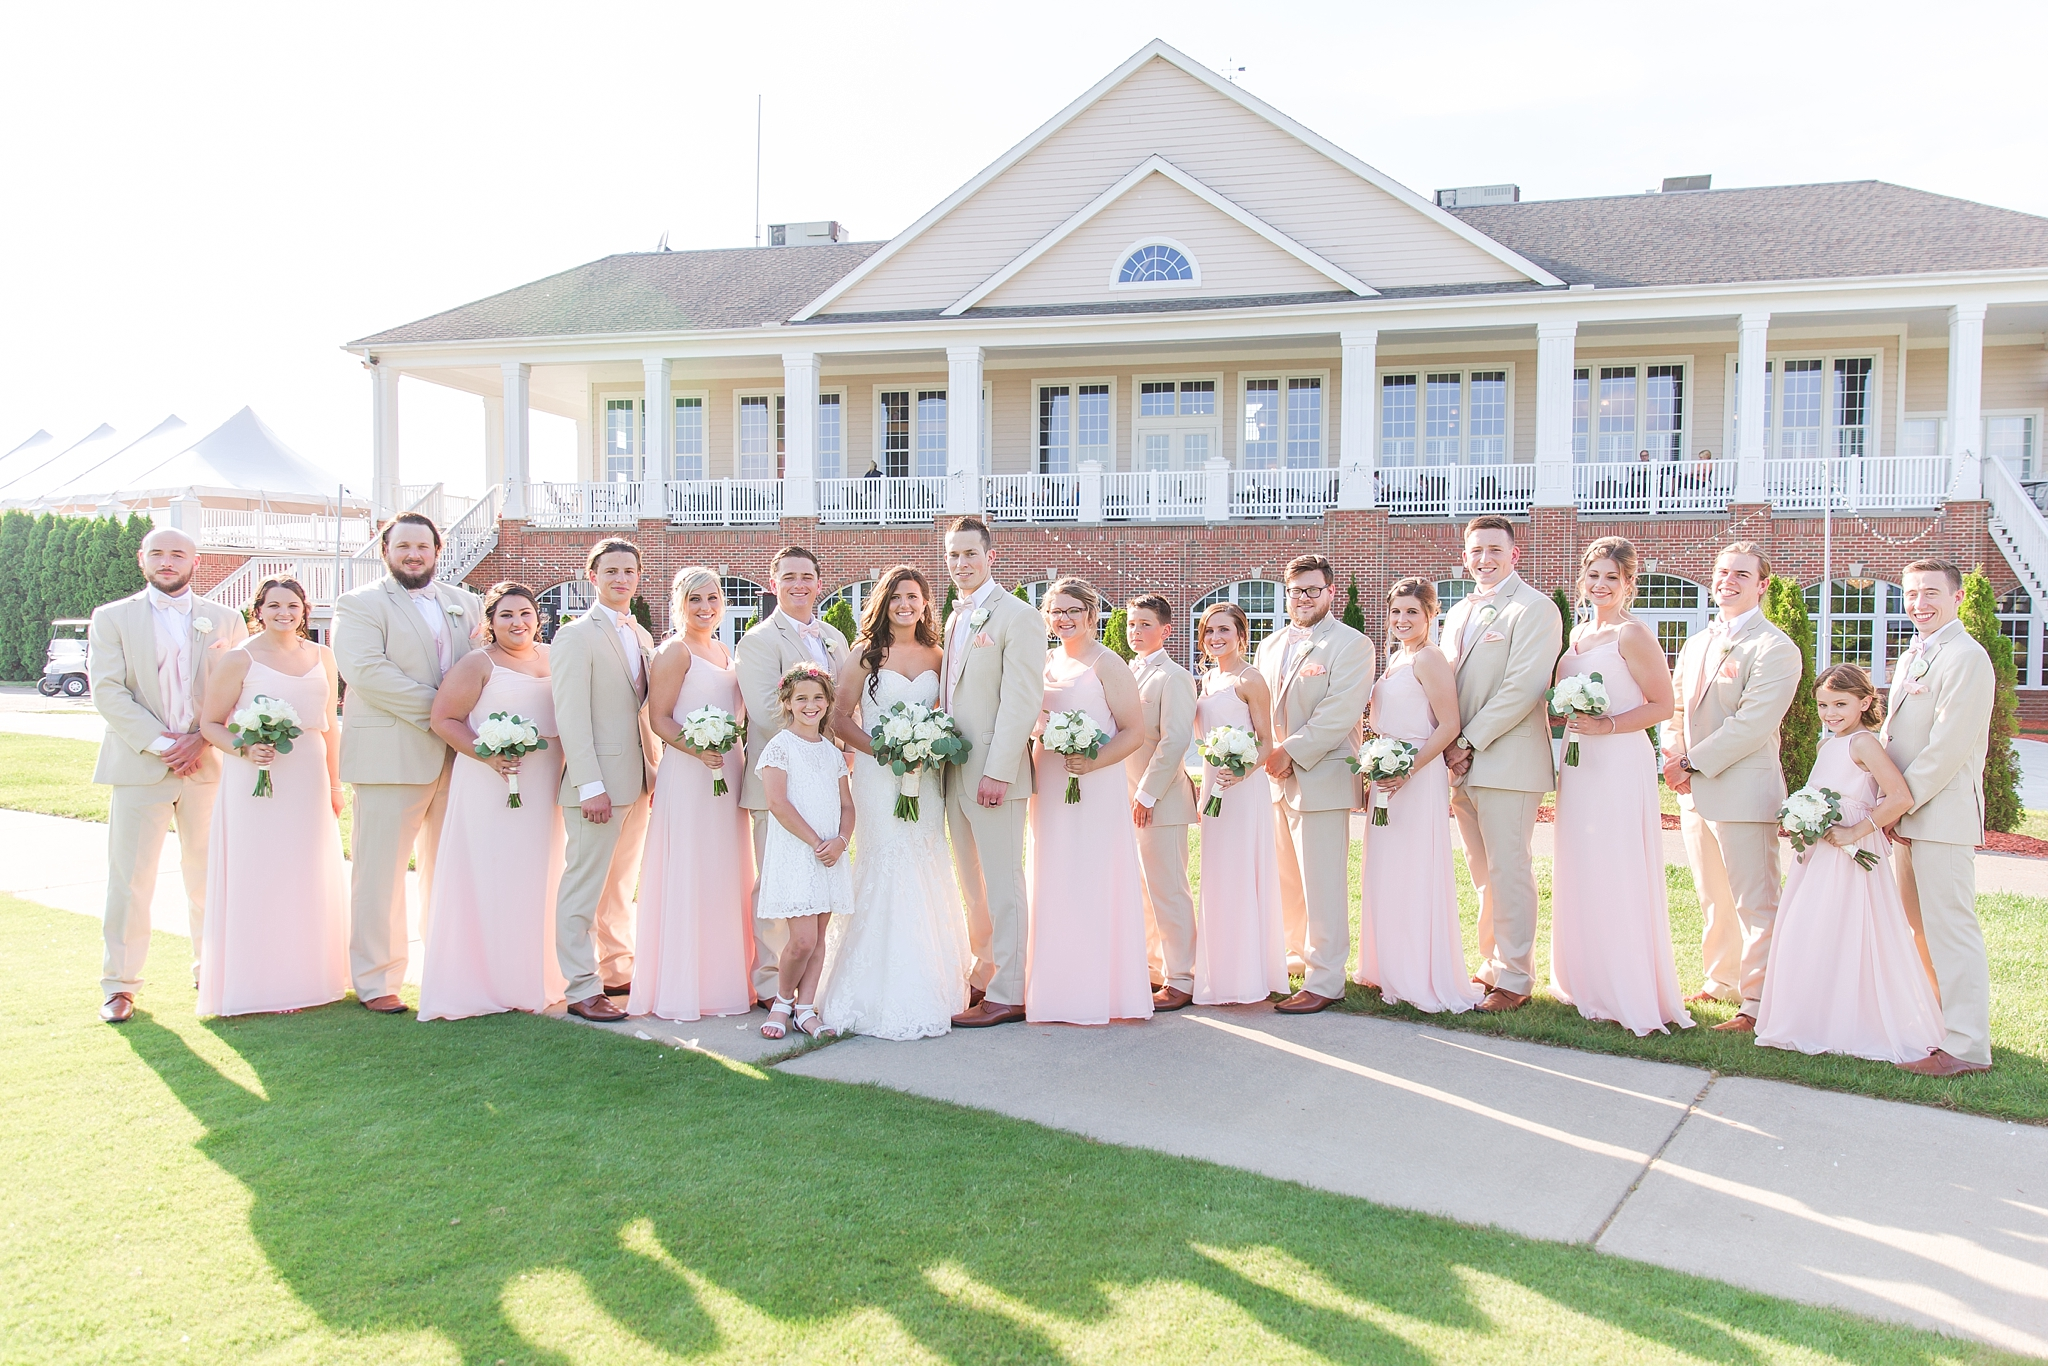 candid-timeless-wedding-photos-at-the-captains-club-in-grand-blanc-michigan-by-courtney-carolyn-photography_0076.jpg